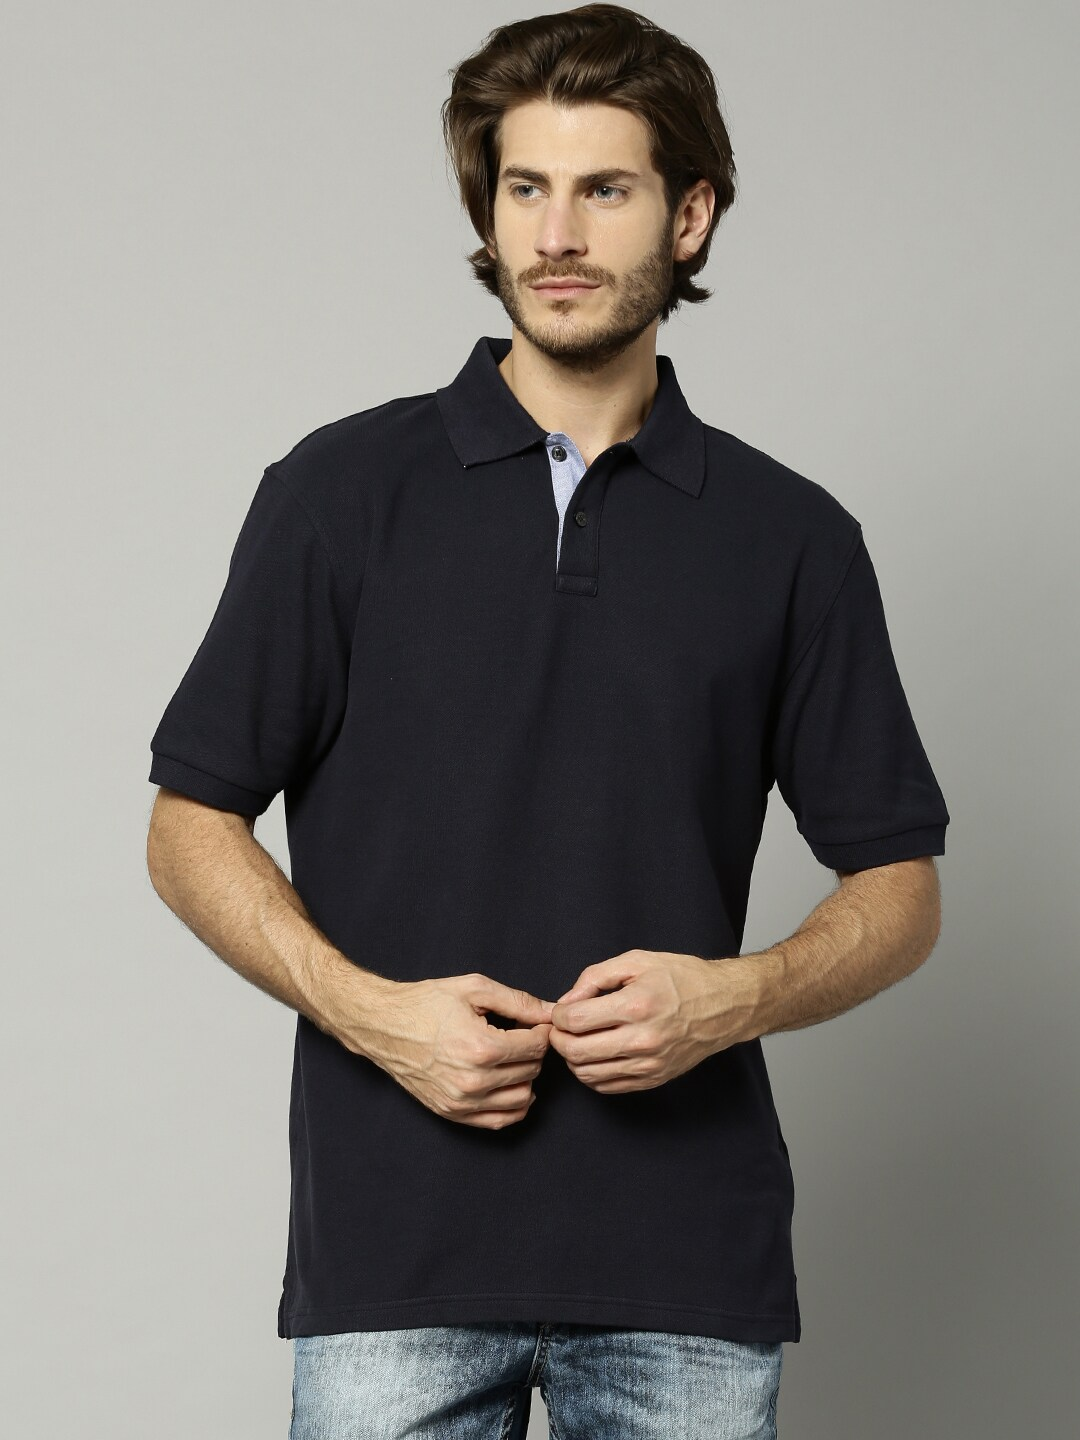 Mens jacket marks and spencer - Marks And Spencer Clothing Buy M S Men Women Clothing Online Myntra